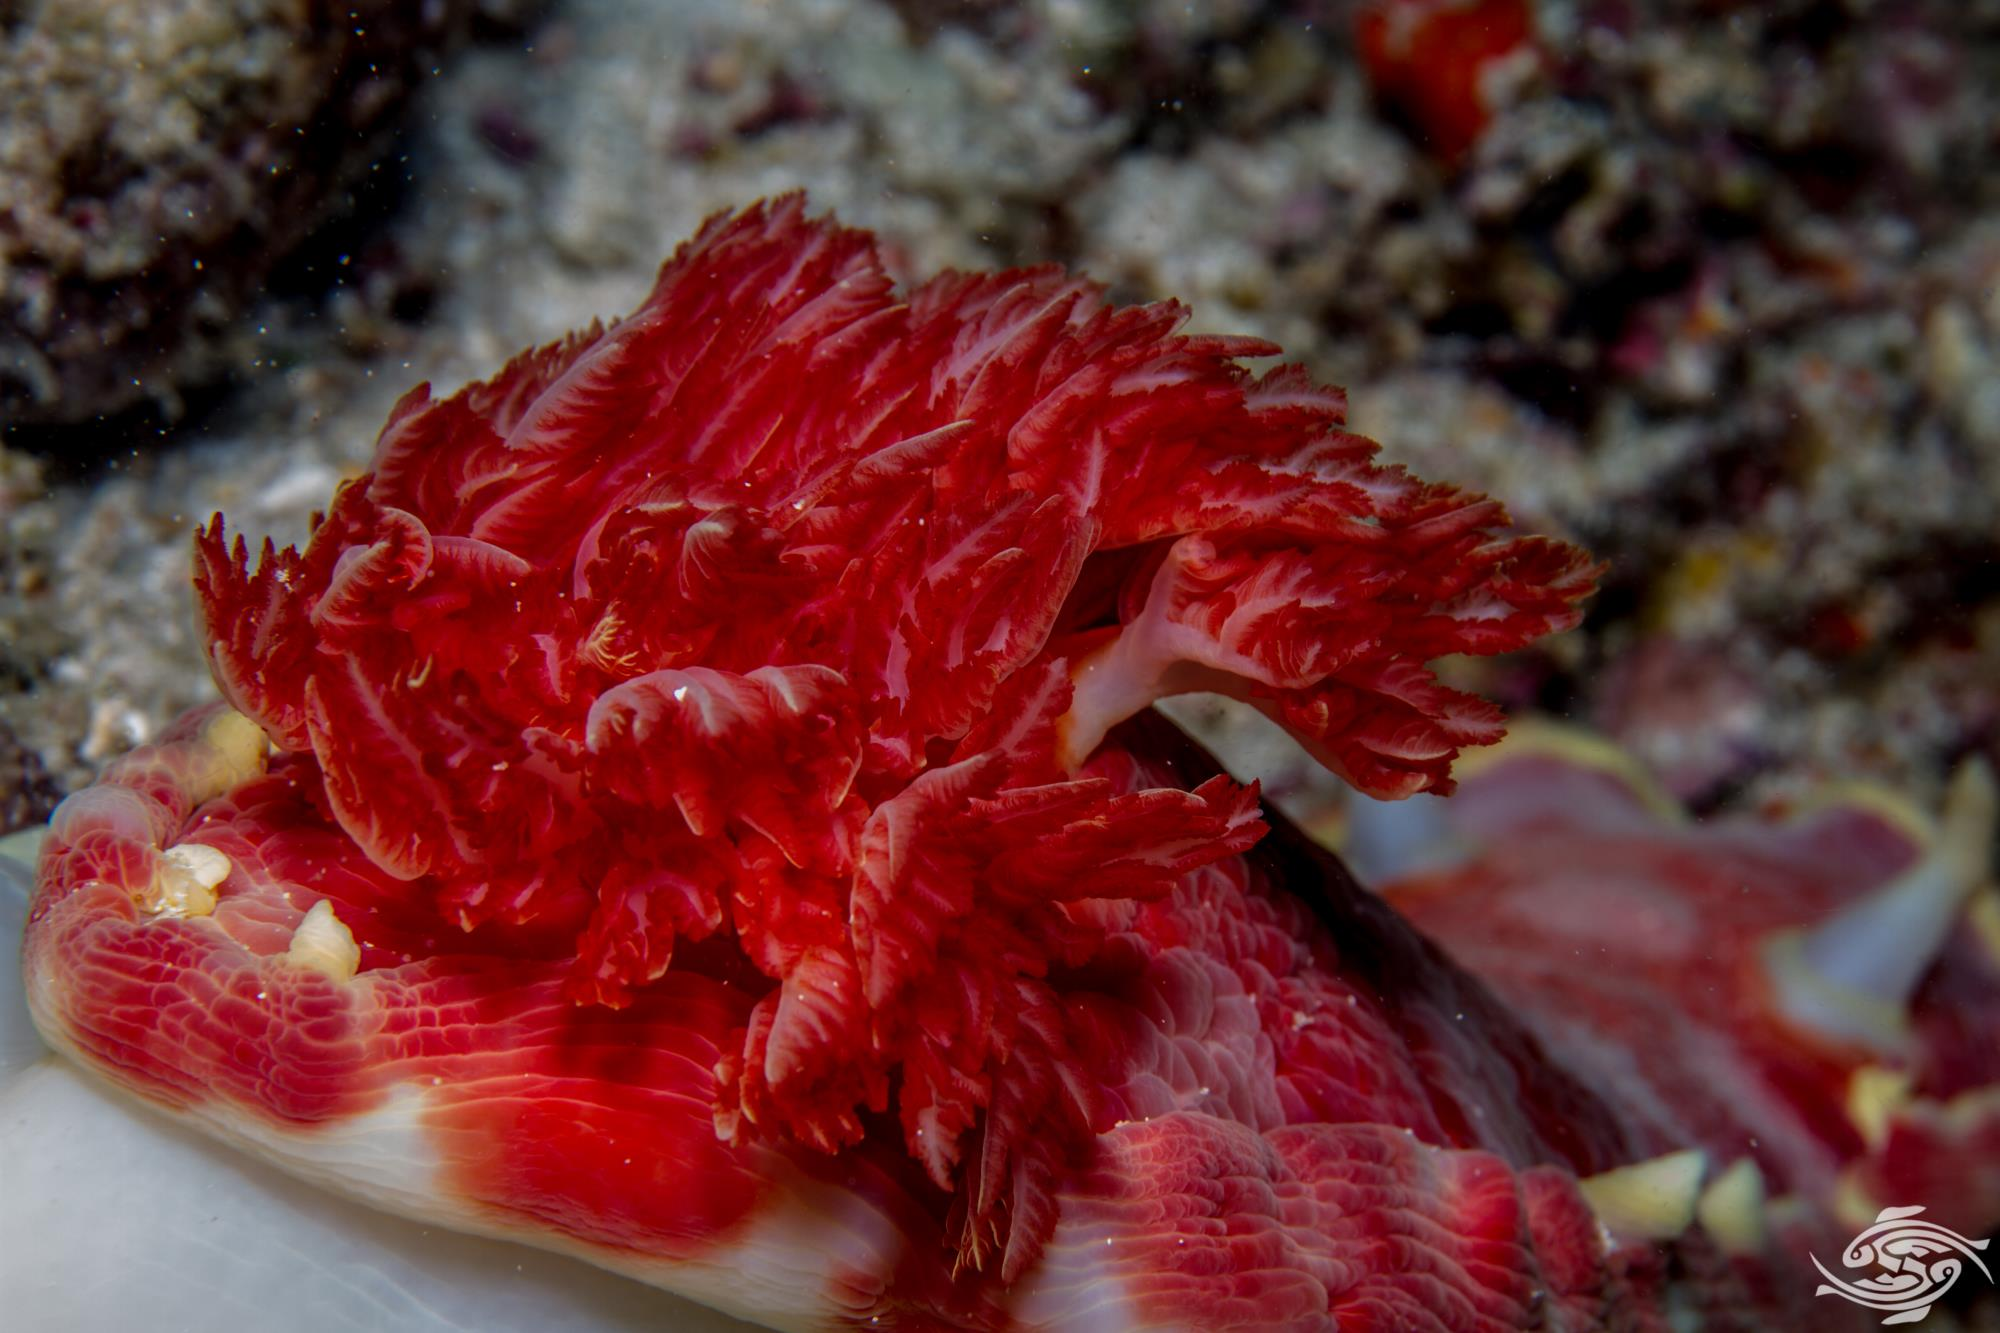 Spanish Dancer Hexabranchus sanguineus